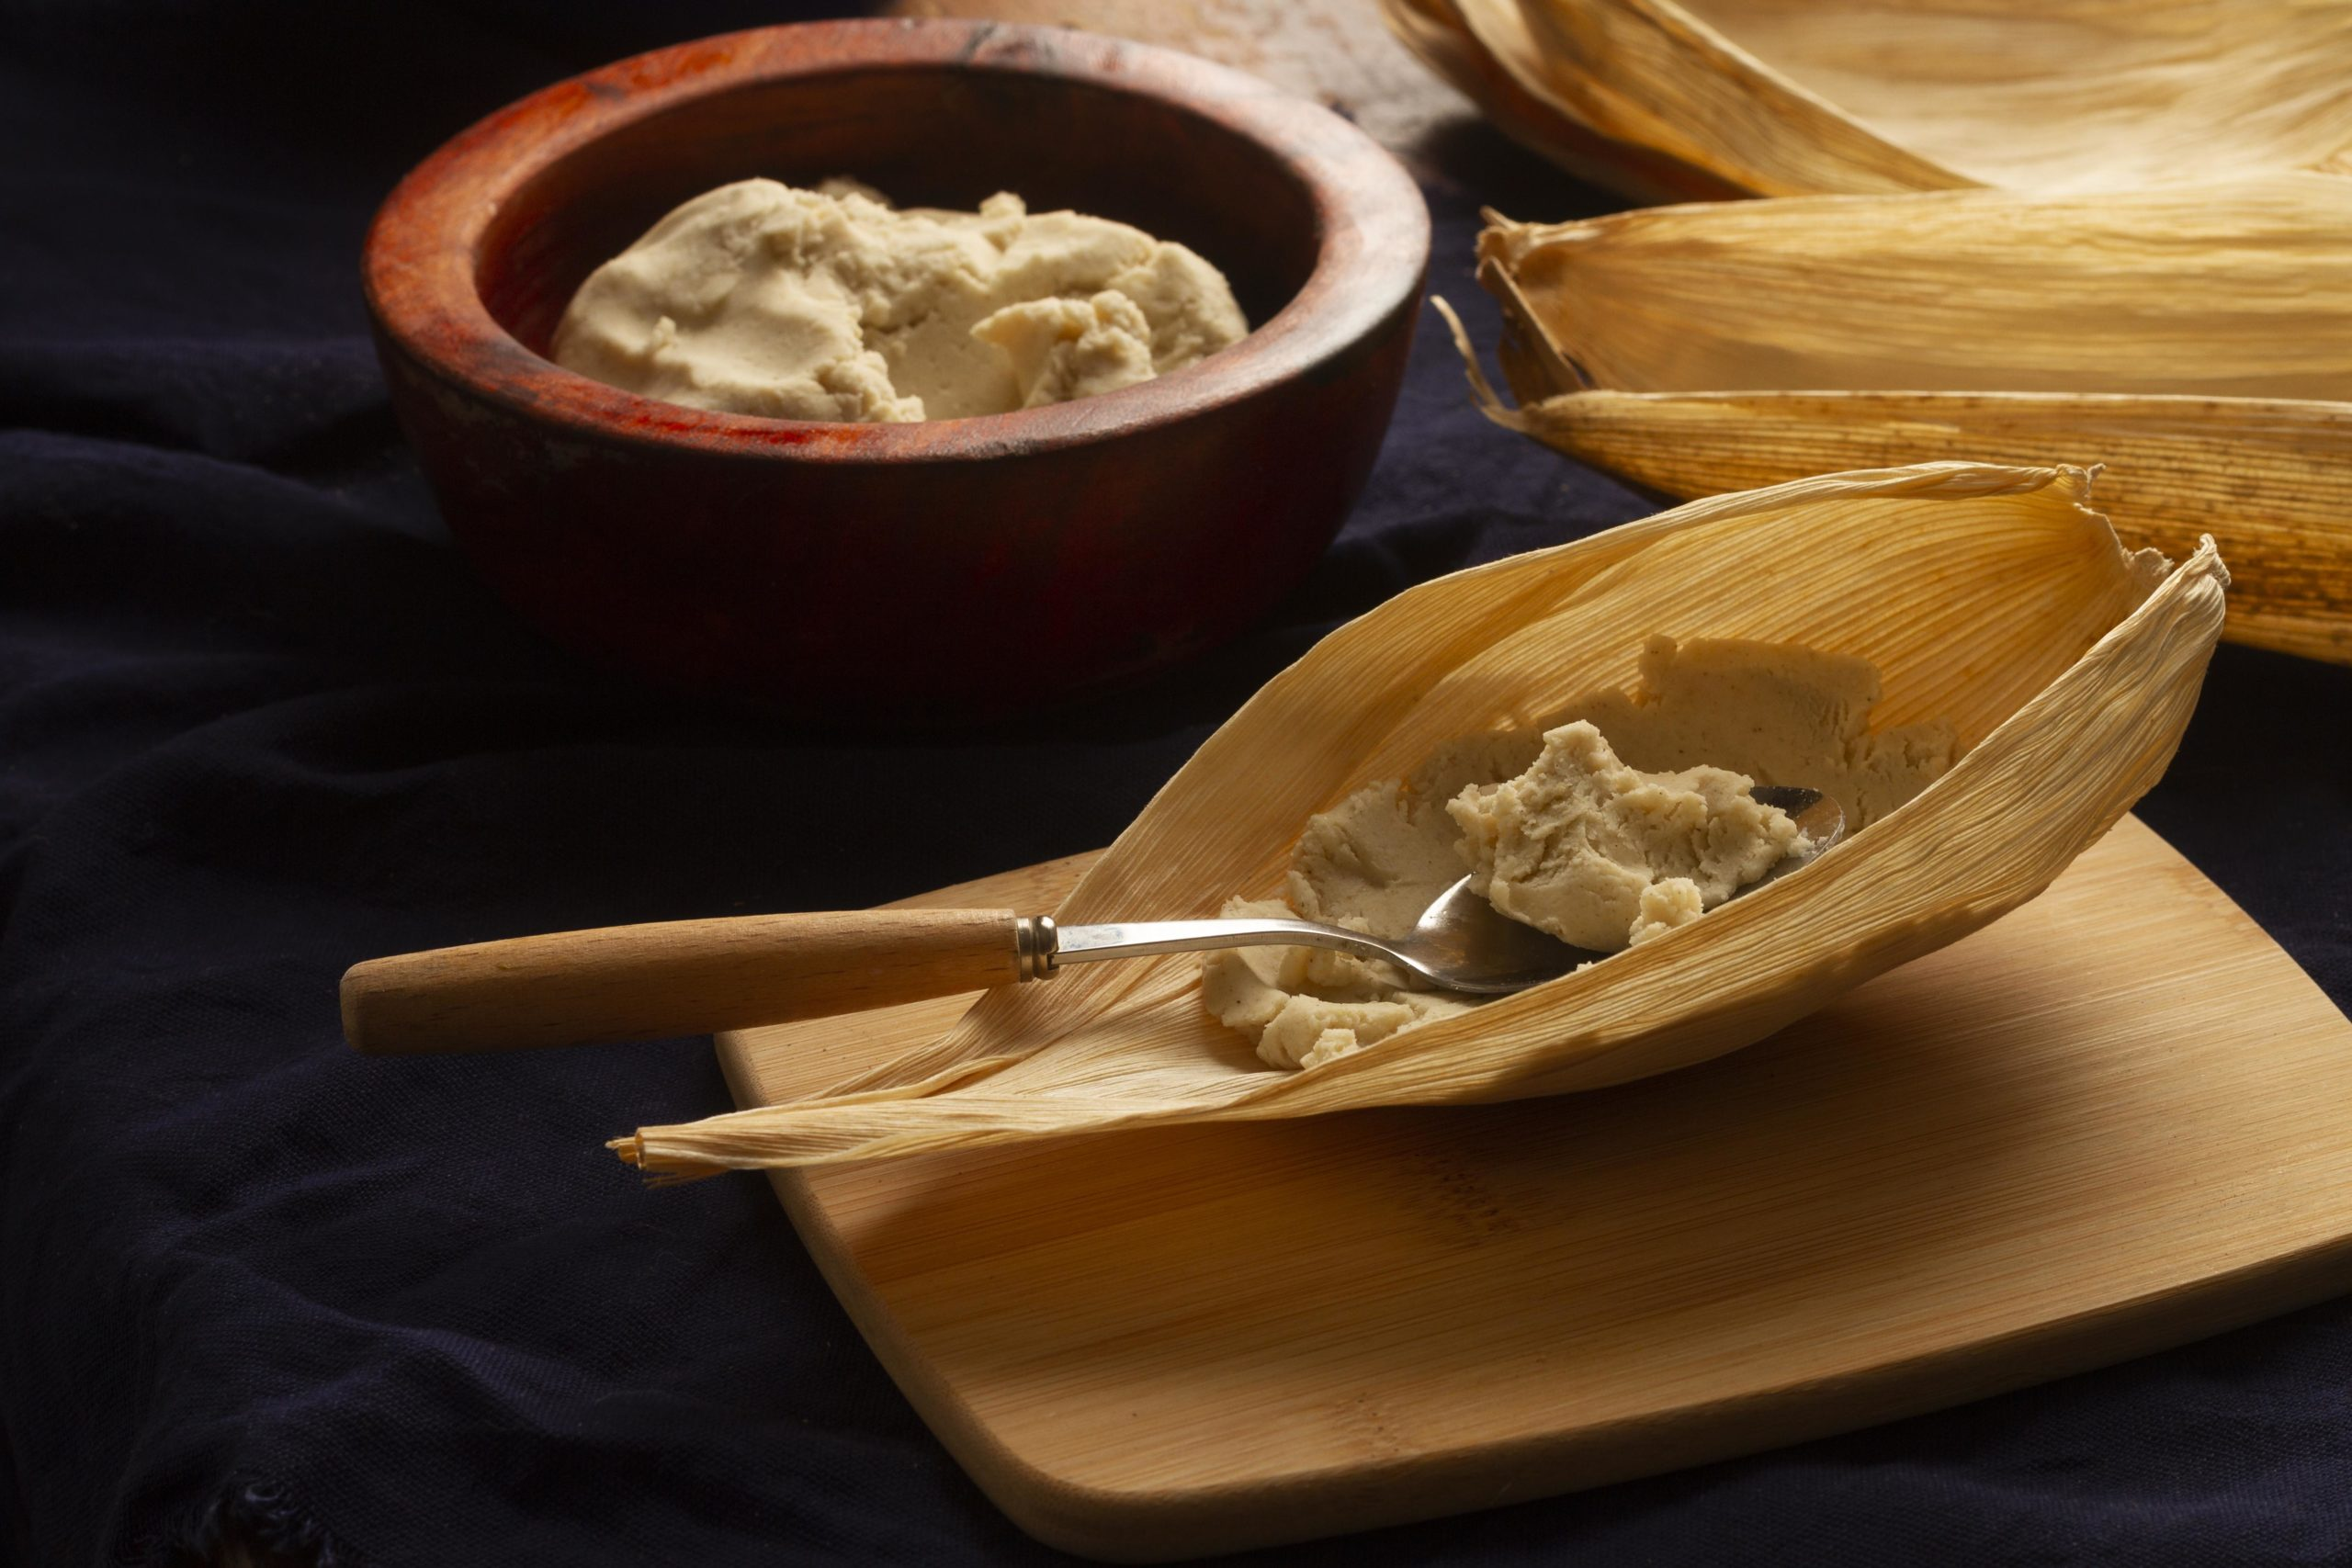 How Long do Tamales Take to Cook?